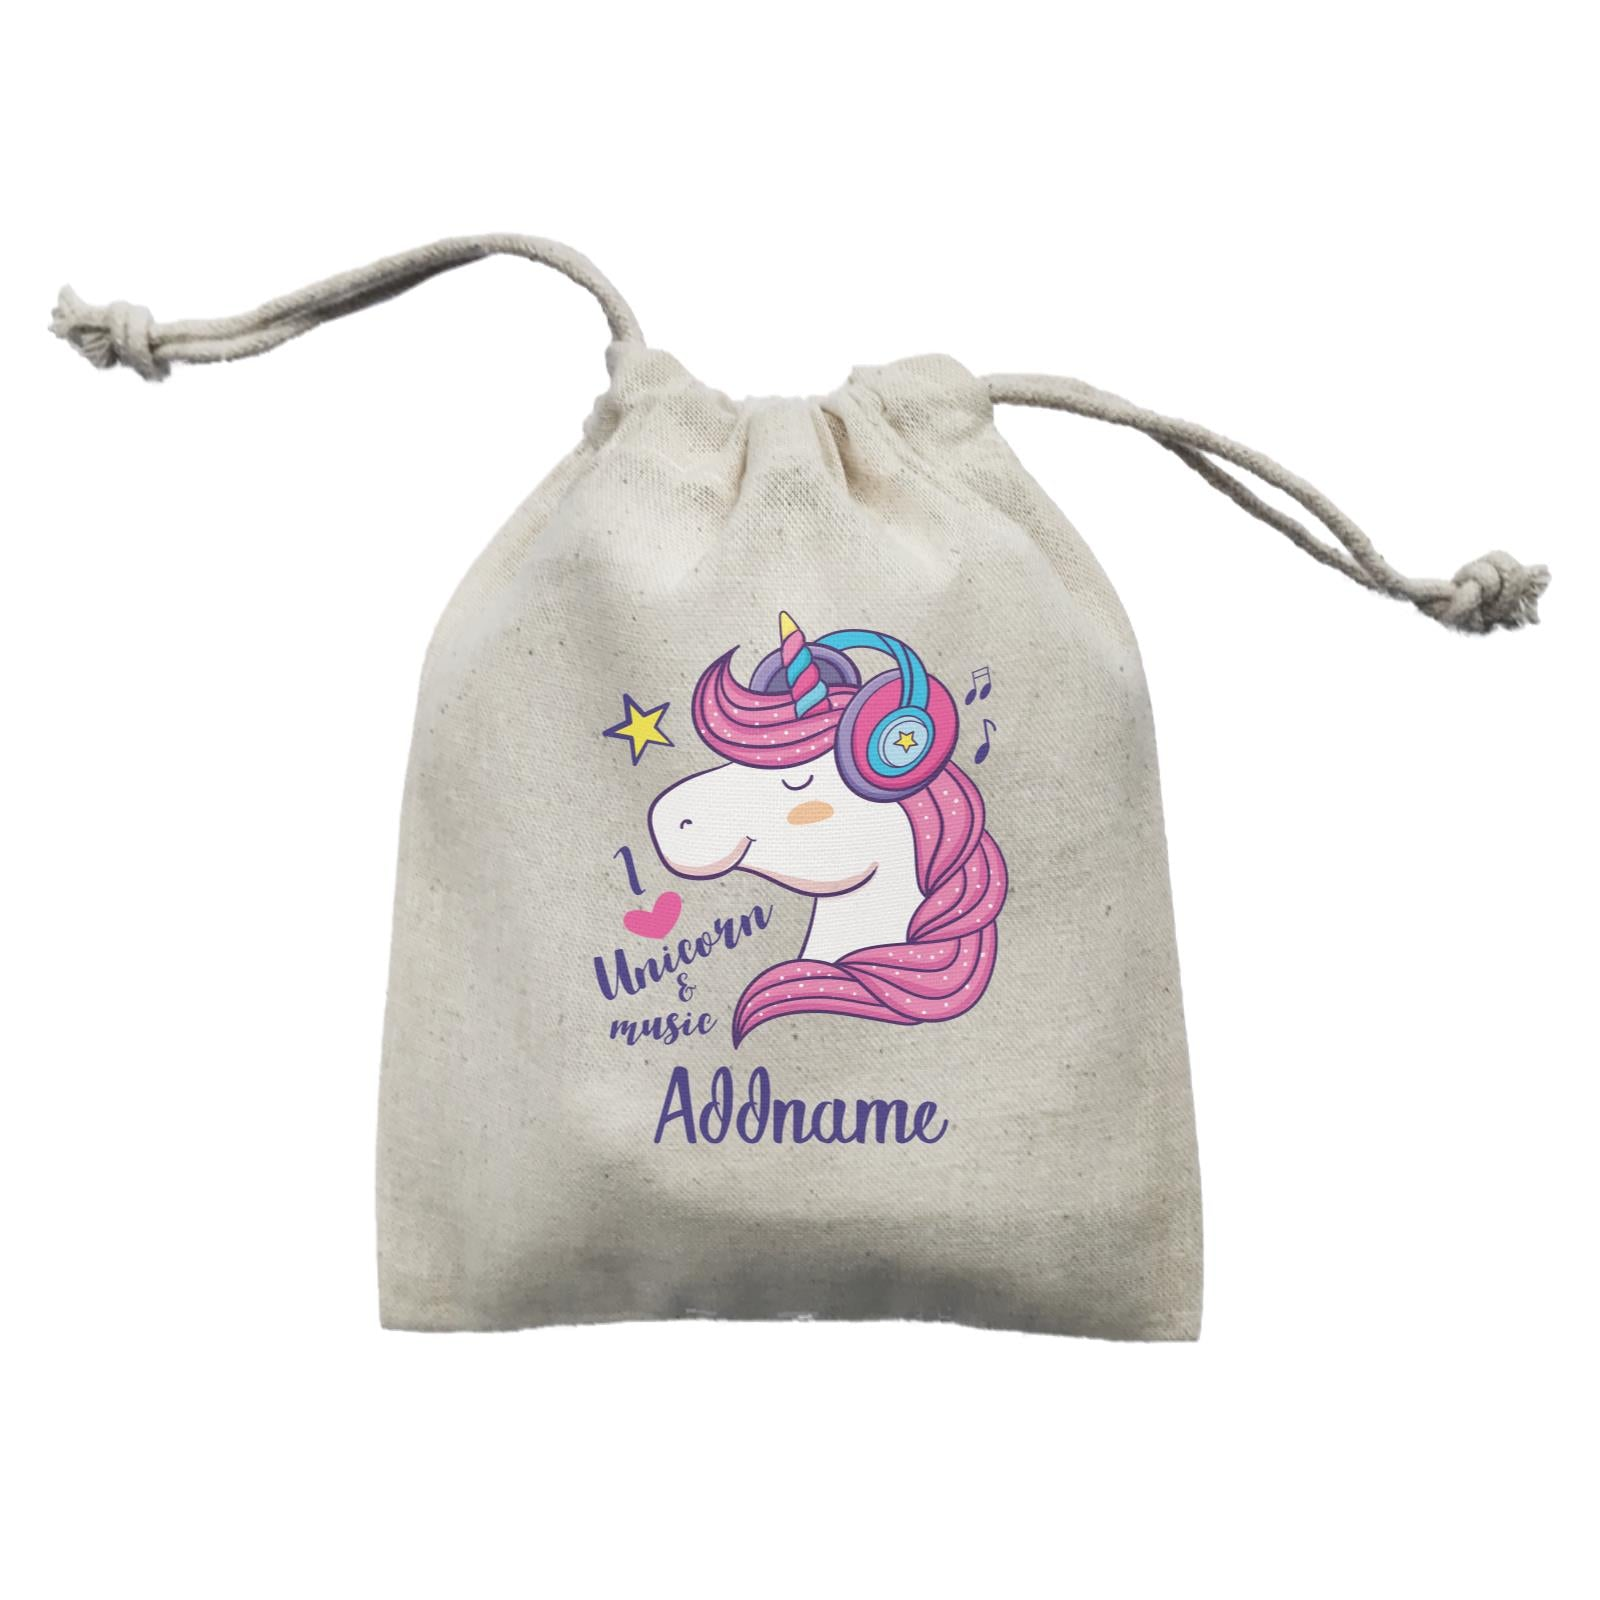 Cool Cute Unicorn I Love Unicorn & Music Addname Mini Accessories Mini Pouch